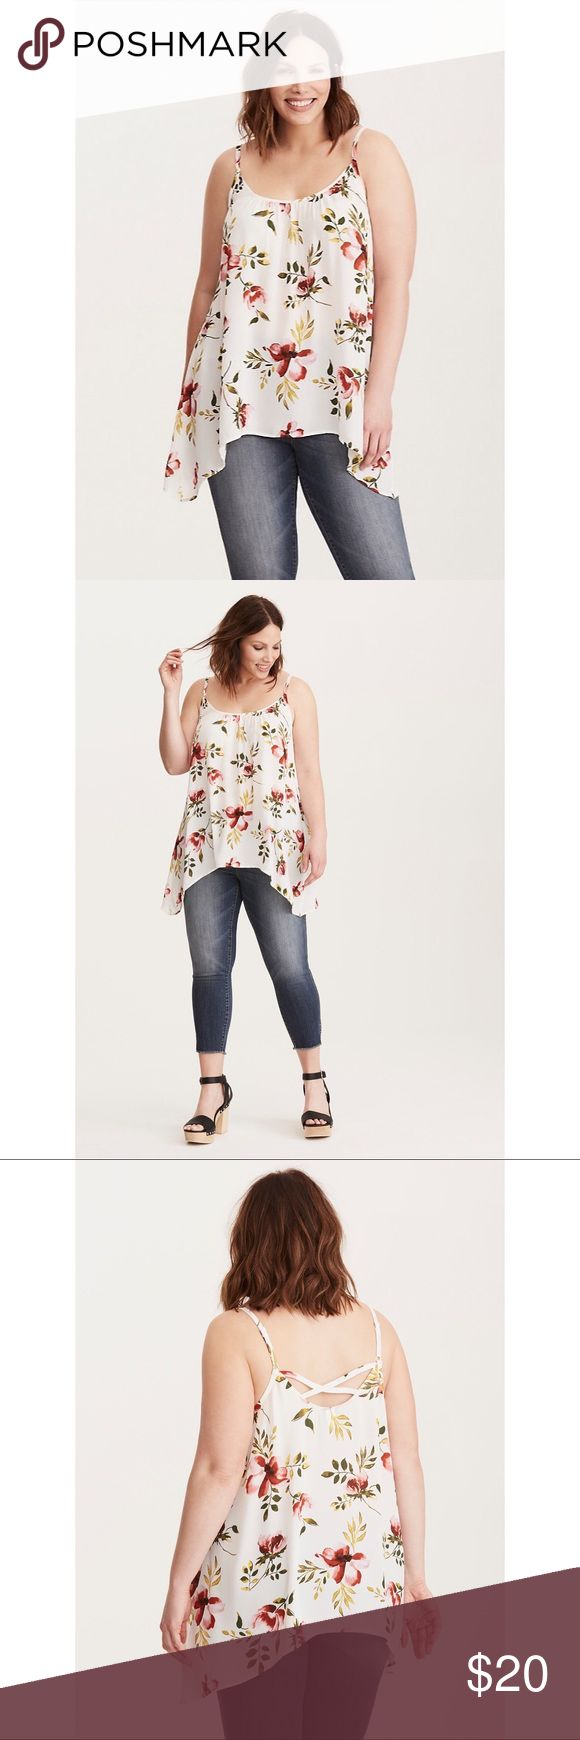 """NWT Torrid Floral Cami Top This top tends to elicit """"ooohs!"""" It might be the watercolor-inspired floral print on the totally sheer white georgette. It could possibly be the swingy silhouette caused by a flowy sharkbite hem and pleated neck. But we're pretty sure it's the strappy crossback.  Model is 5'9.5"""", size 1 * Size 1 measures 29 1/4"""" from shoulder * Polyester * Wash cold, dry low * Imported plus size top  ➡️No Trades. ➡️No Lowball Offers. ➡️No Holds. ➡️Bundle and save! torrid Tops…"""